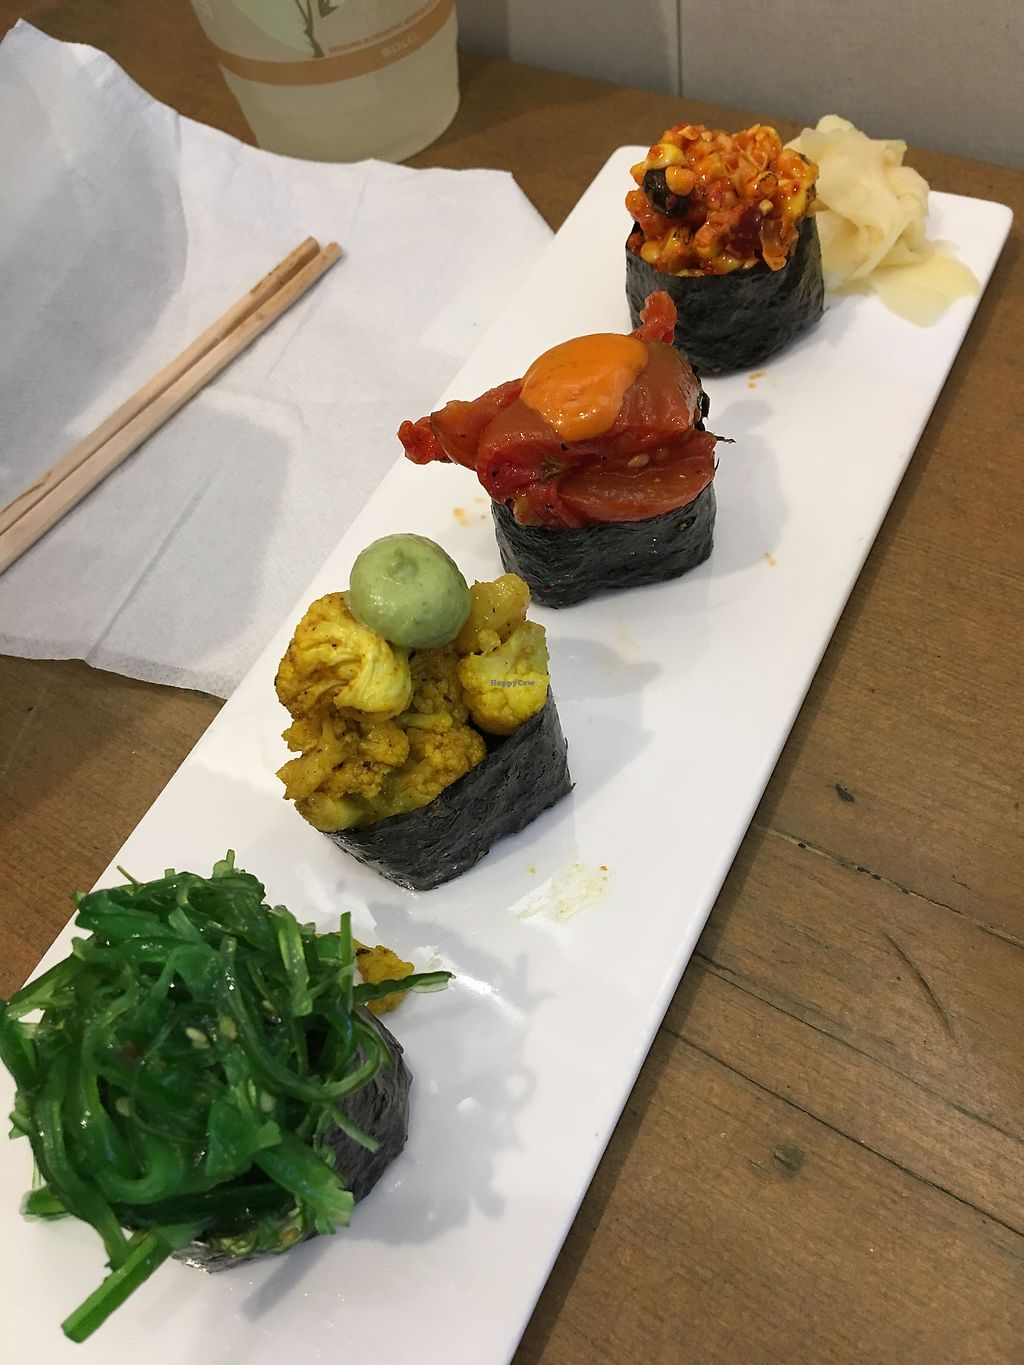 """Photo of Beyond Sushi - Midtown West  by <a href=""""/members/profile/Thepennsyltuckyvegan"""">Thepennsyltuckyvegan</a> <br/>Sushi special <br/> October 17, 2017  - <a href='/contact/abuse/image/54327/315993'>Report</a>"""